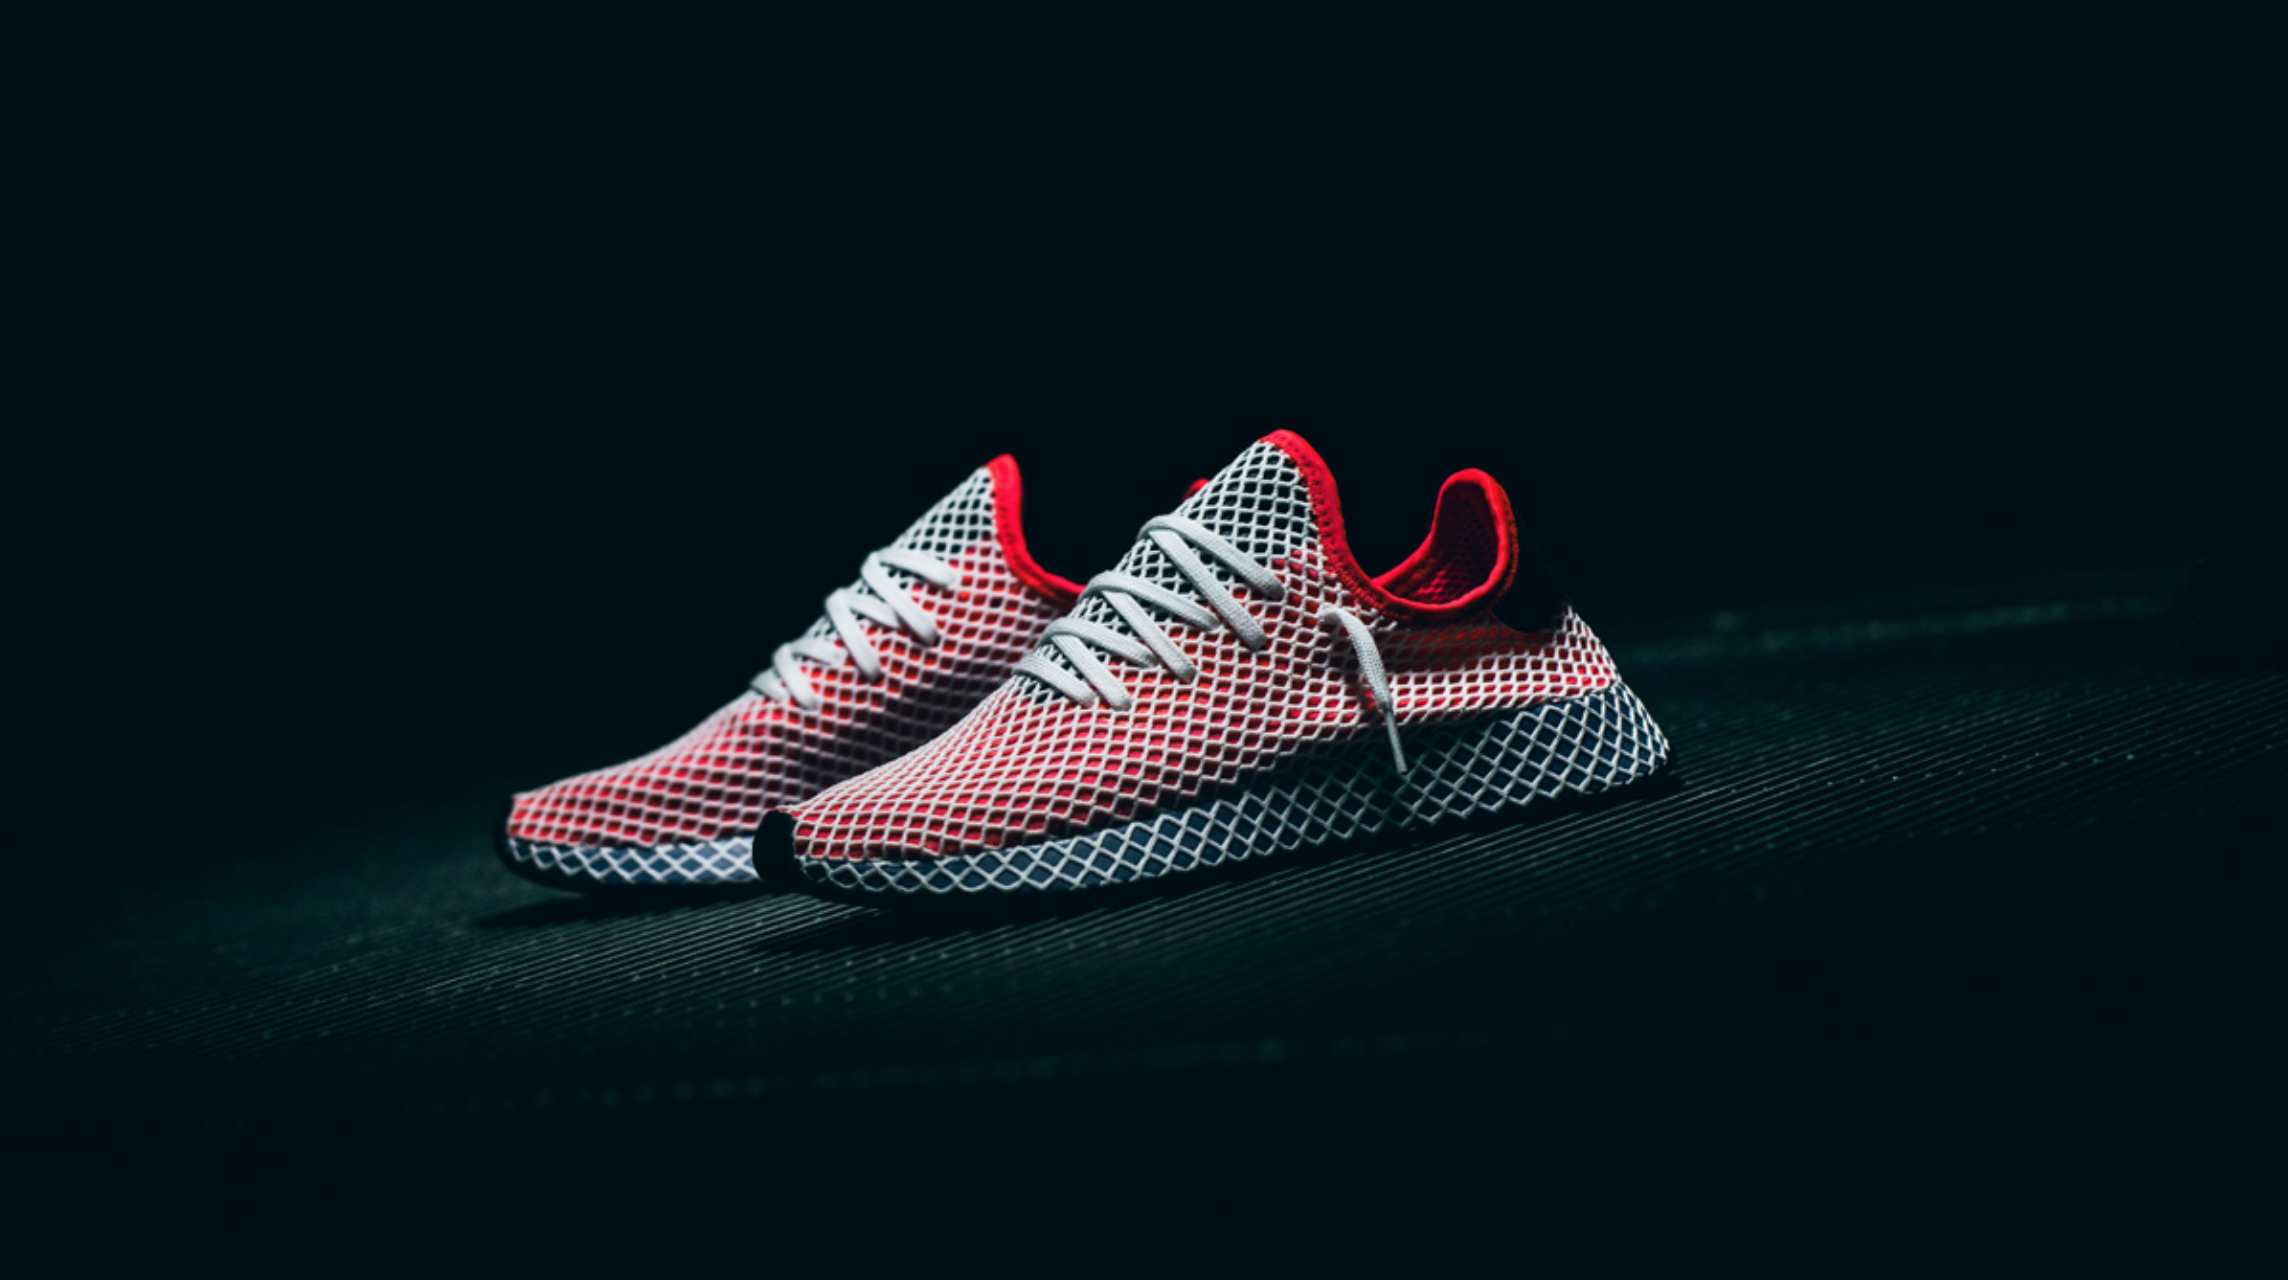 reputable site 3fb36 1d4cf adidas Originals Officially Reveal the Deerupt Sneaker